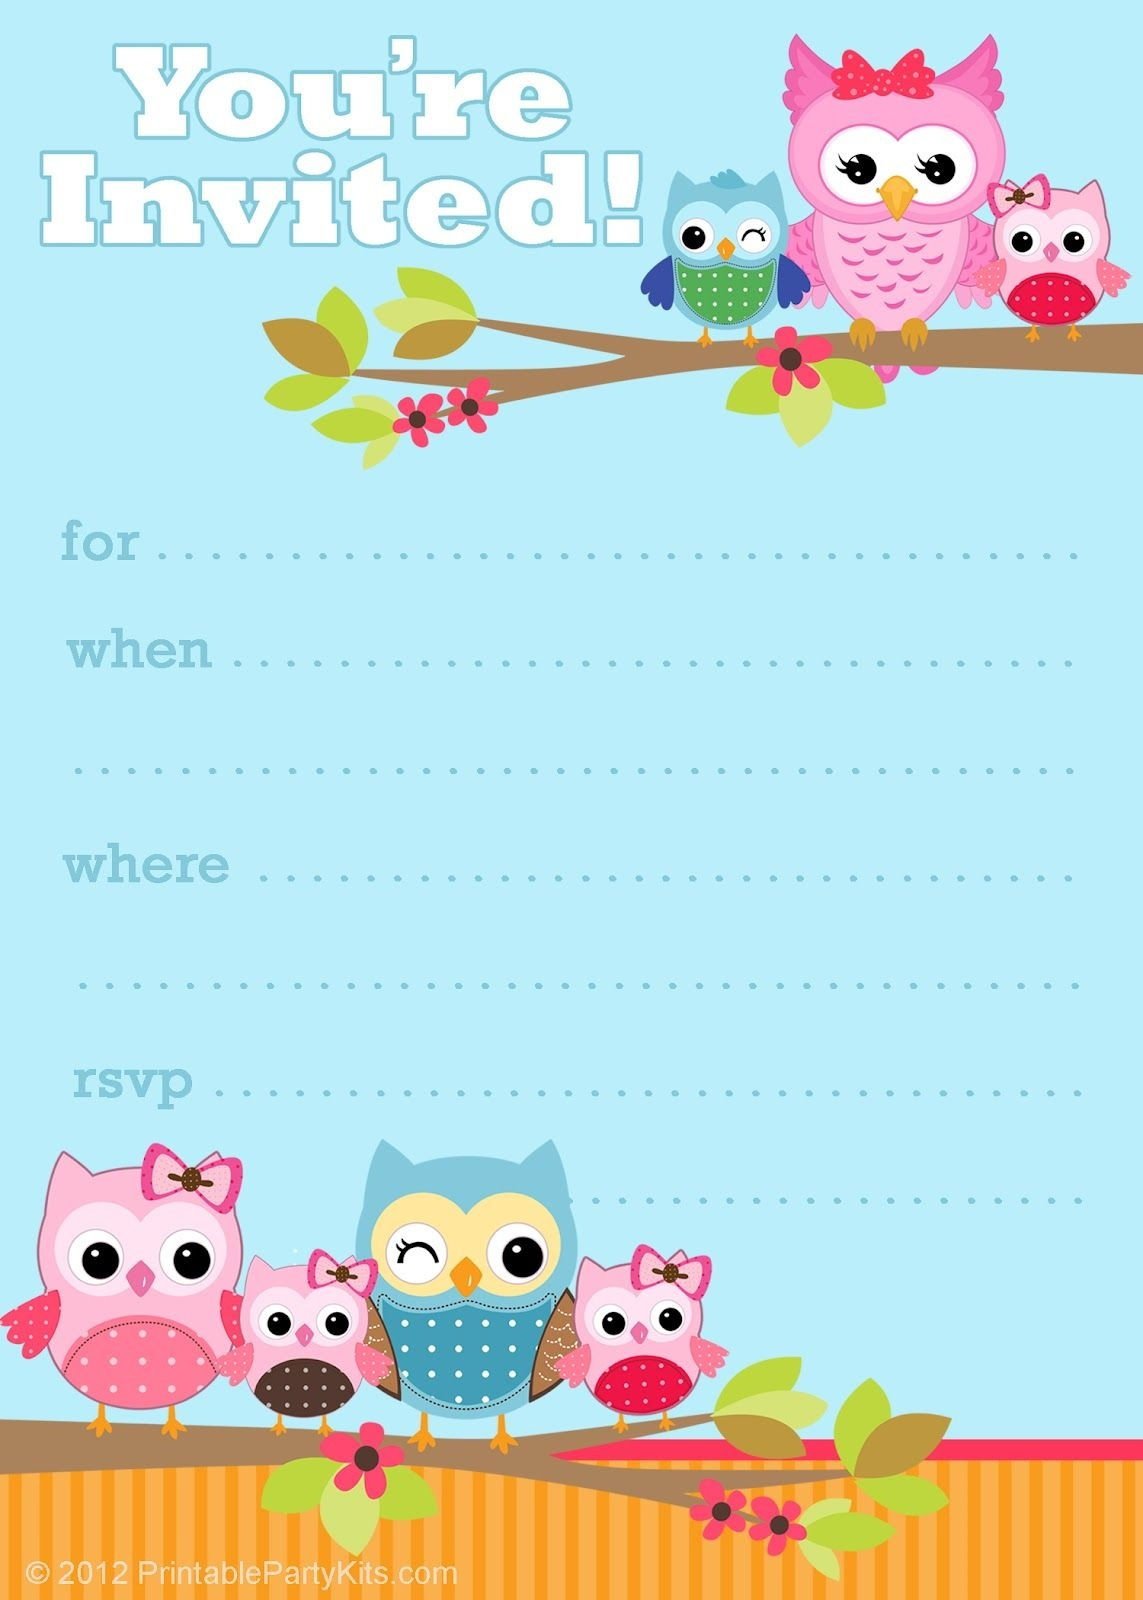 41 Printable Birthday Party Cards & Invitations For Kids To Make - Free Printable Event Invitations